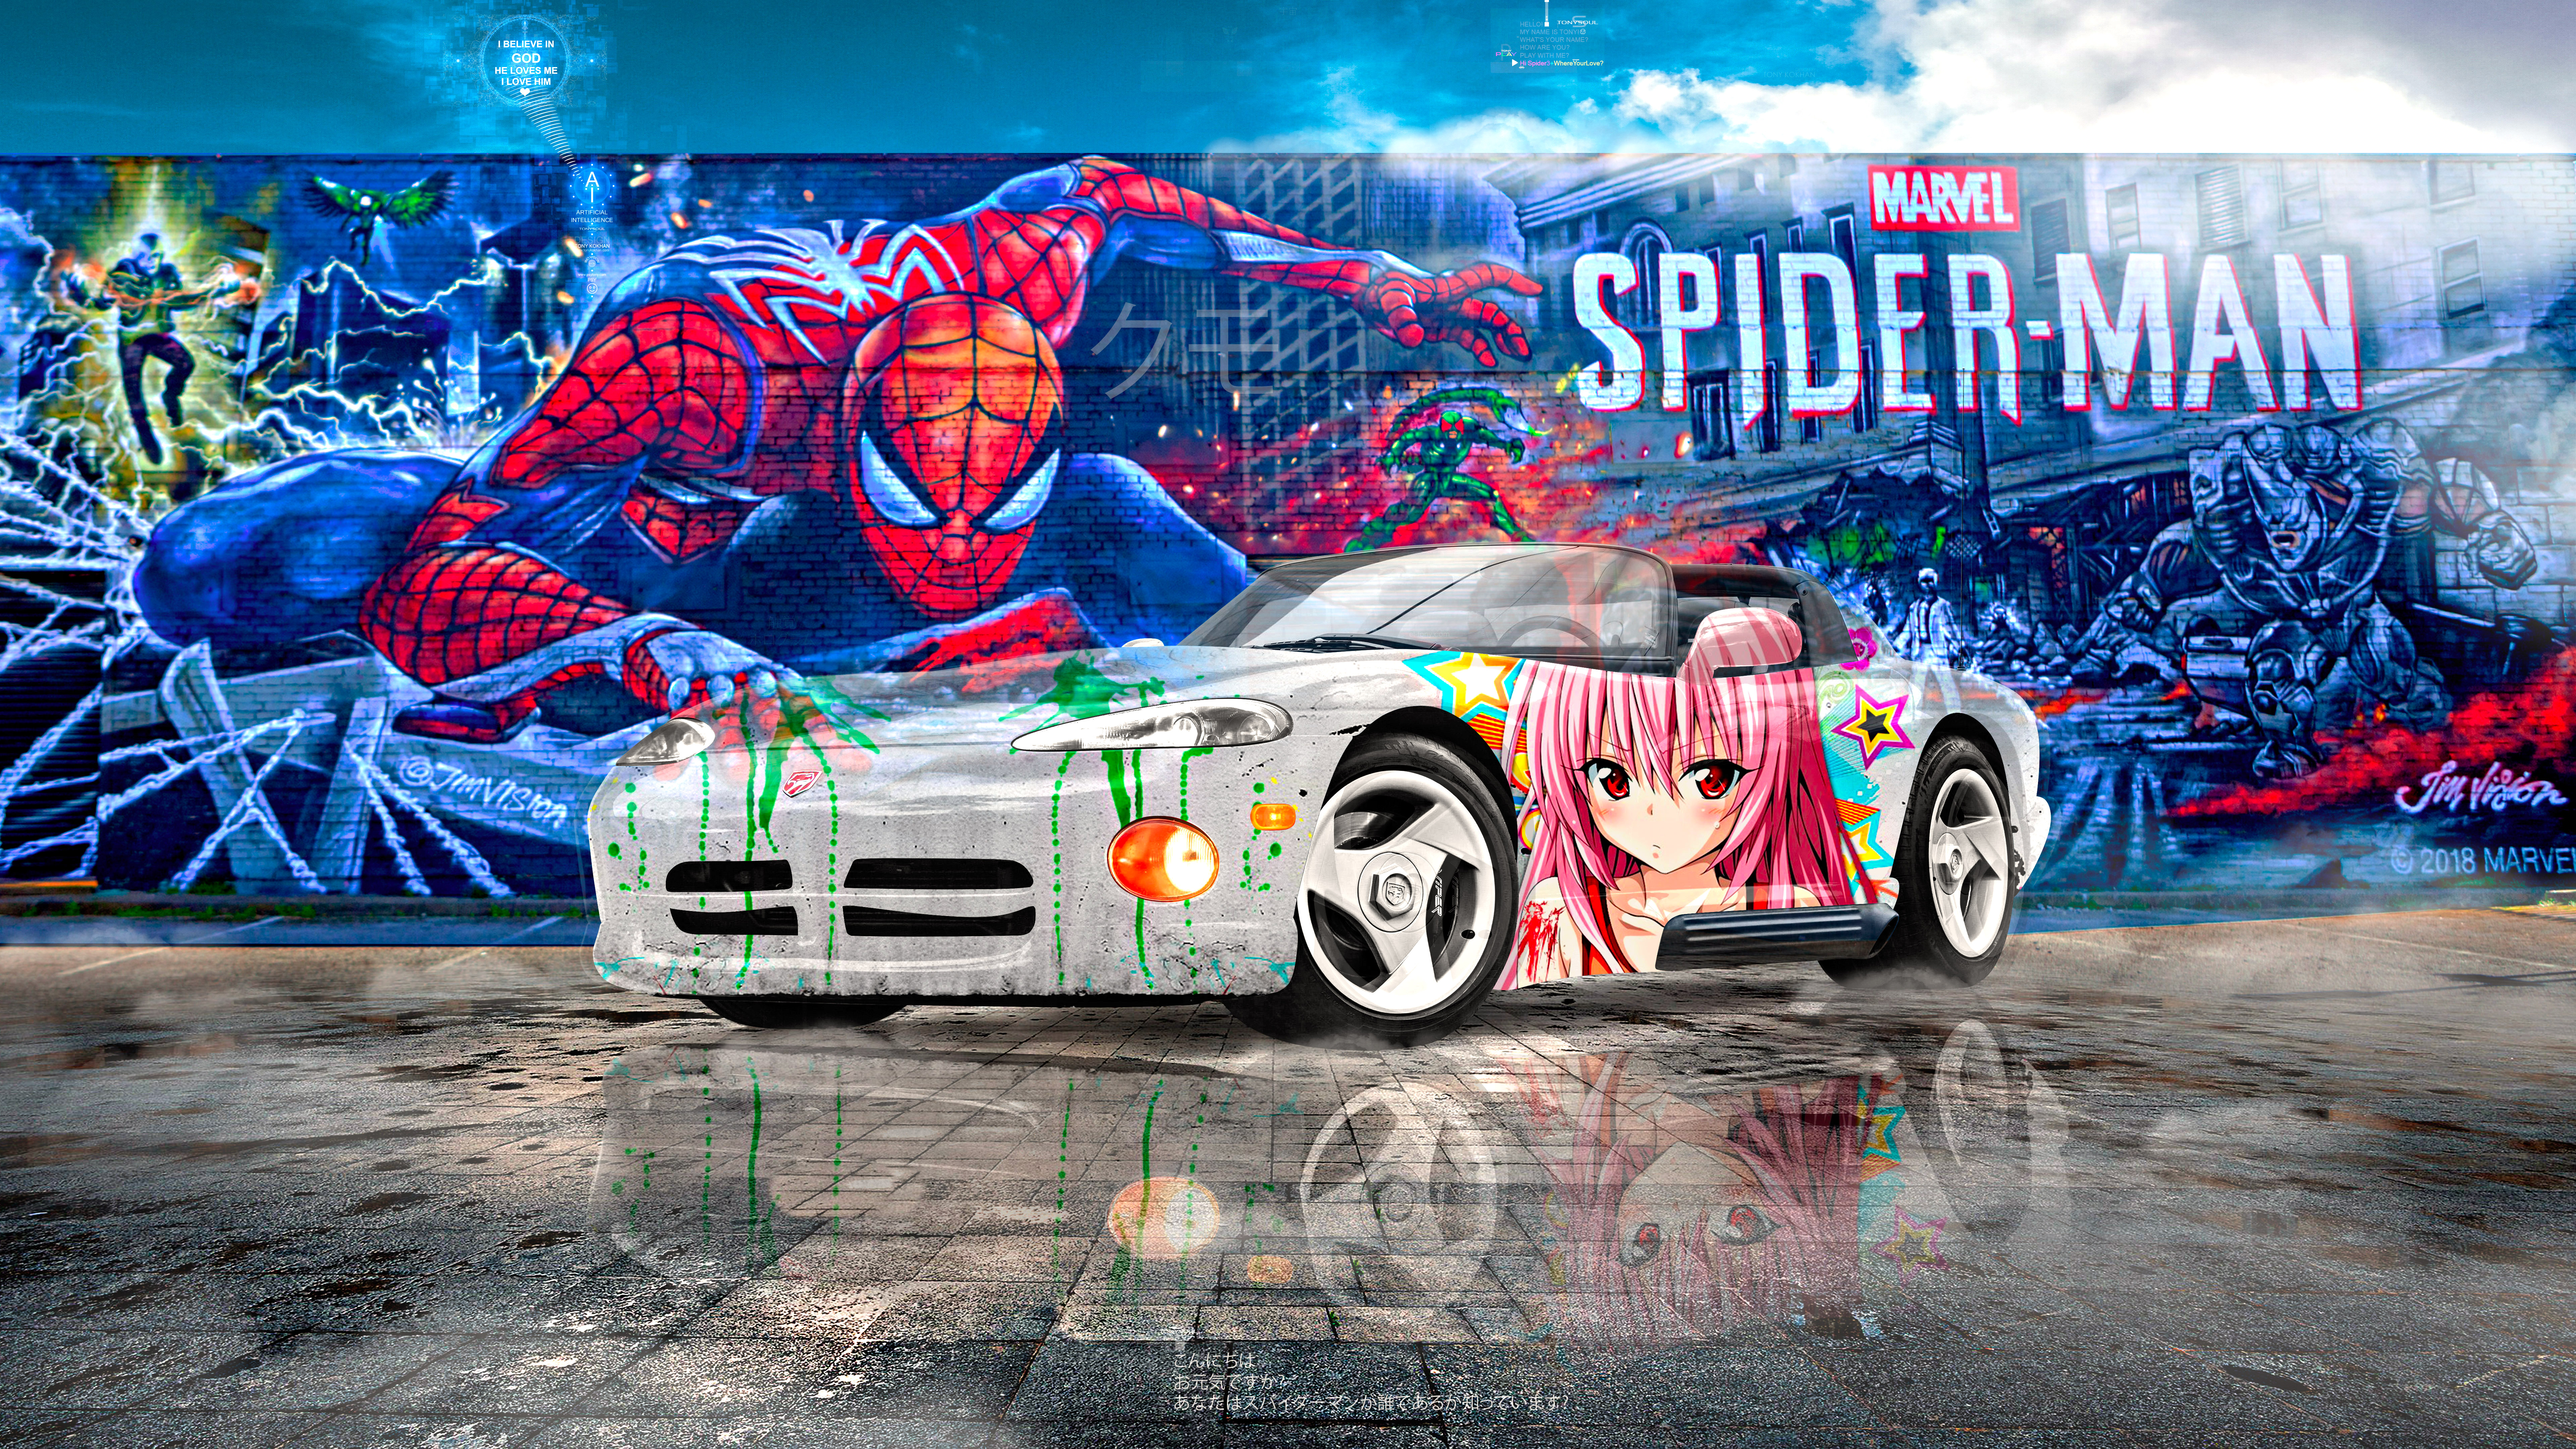 Dodge-Viper-RT10-Super-Anime-Girl-Spider-Man-Graffiti-Crystal-Spider-Soul-Artificial-Intelligence-God-Art-Car-2021-Multicolors-8K-Wallpapers-by-Tony-Kokhan-www.el-tony.com-image